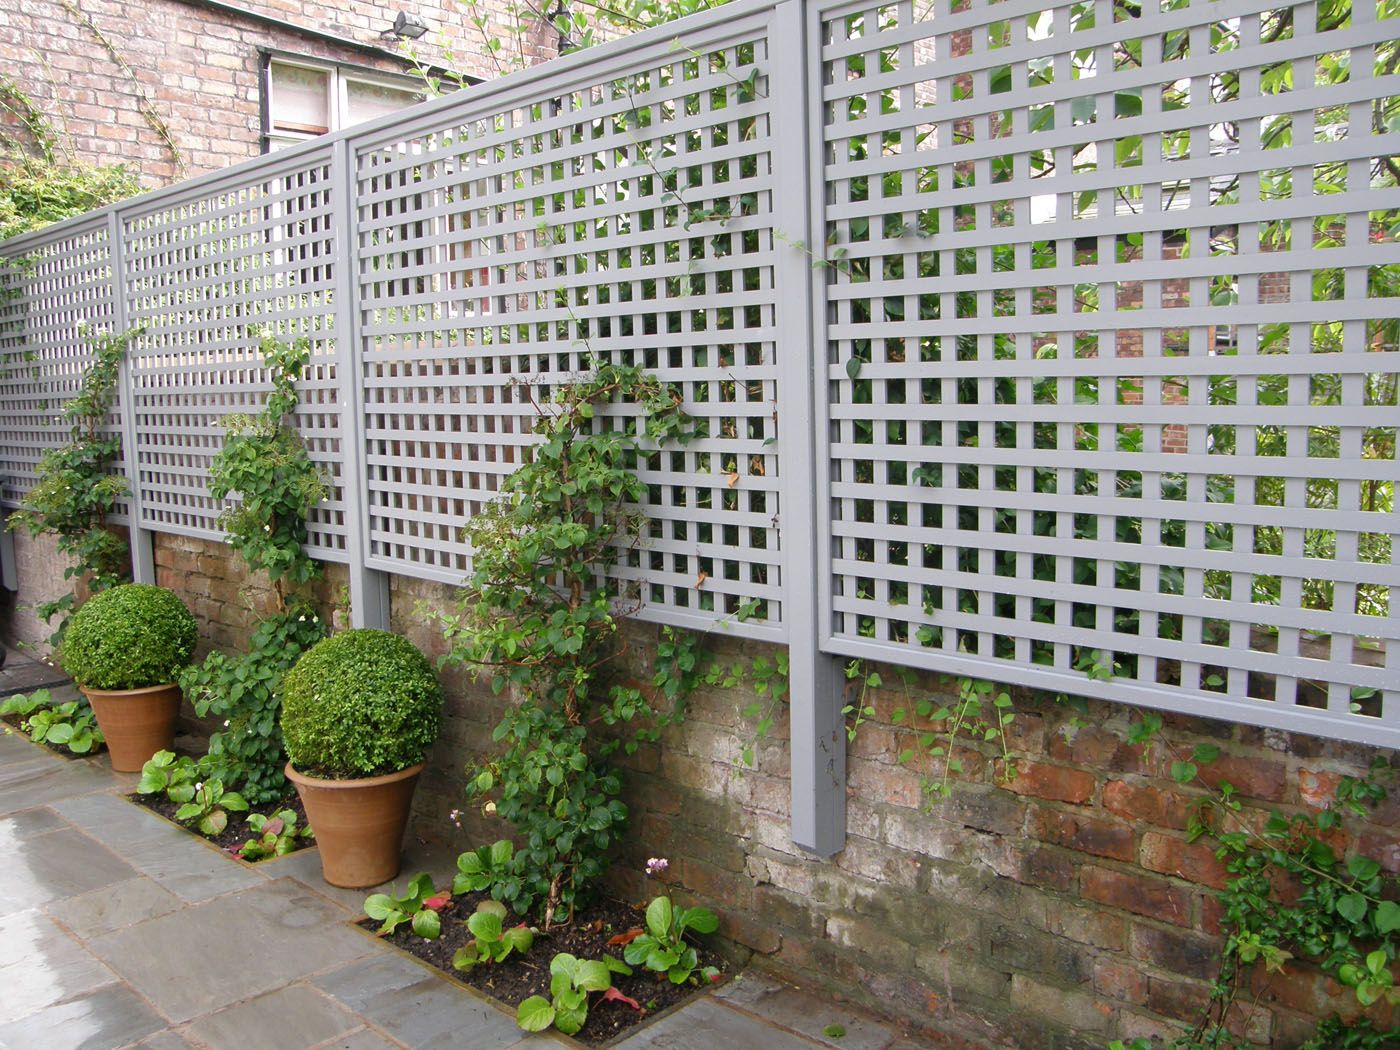 Creative uses for garden trellises greenery dwarf and for Garden screening ideas